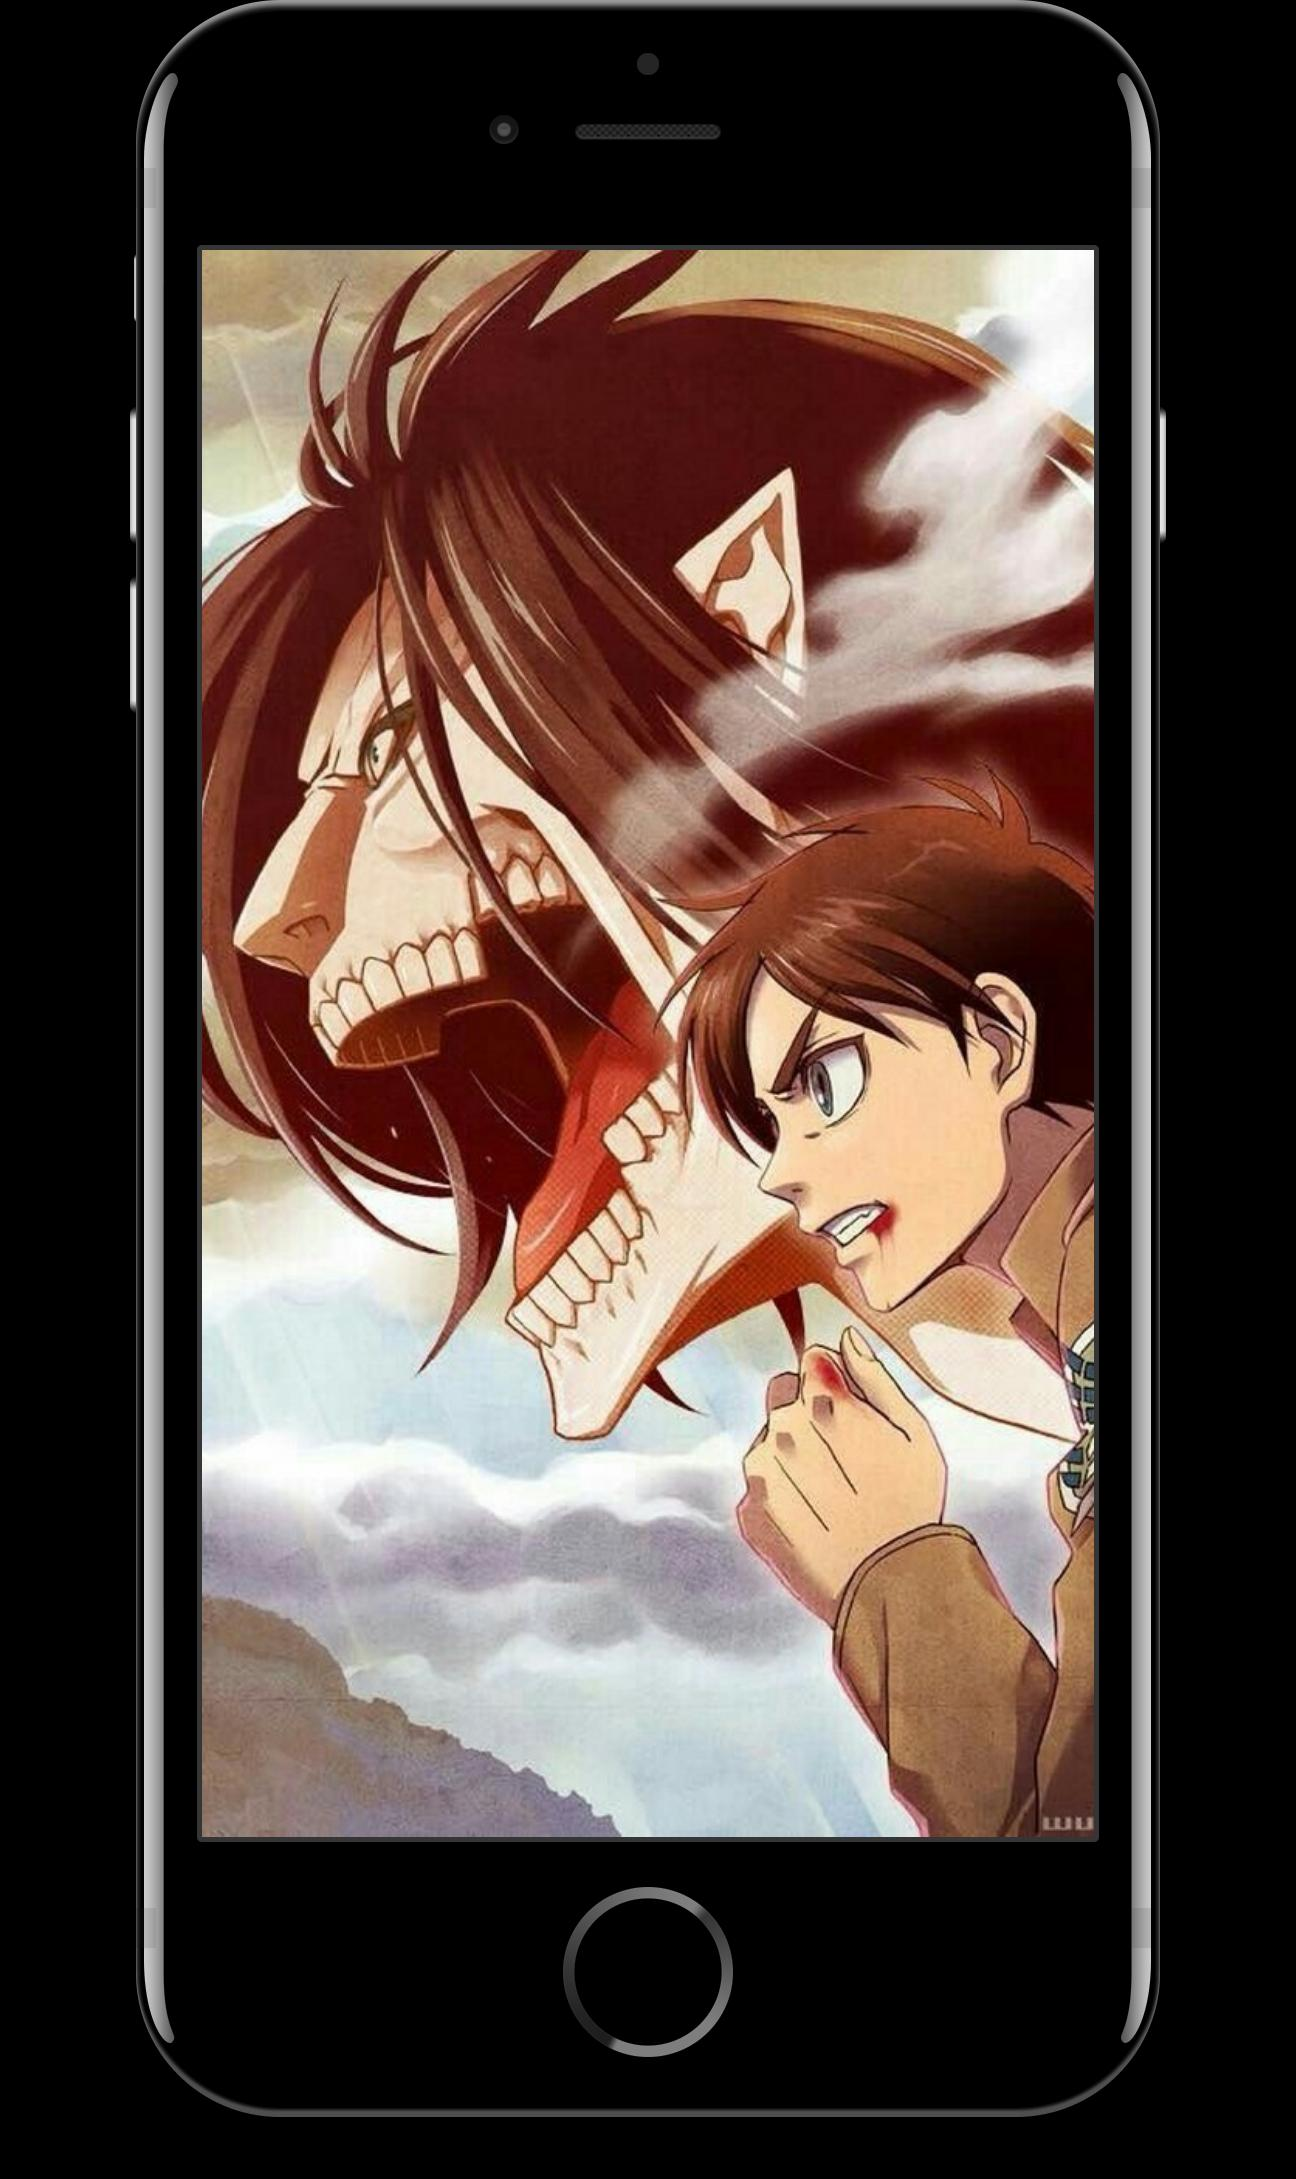 Eren Yeager Wallpapers Hd For Android Apk Download